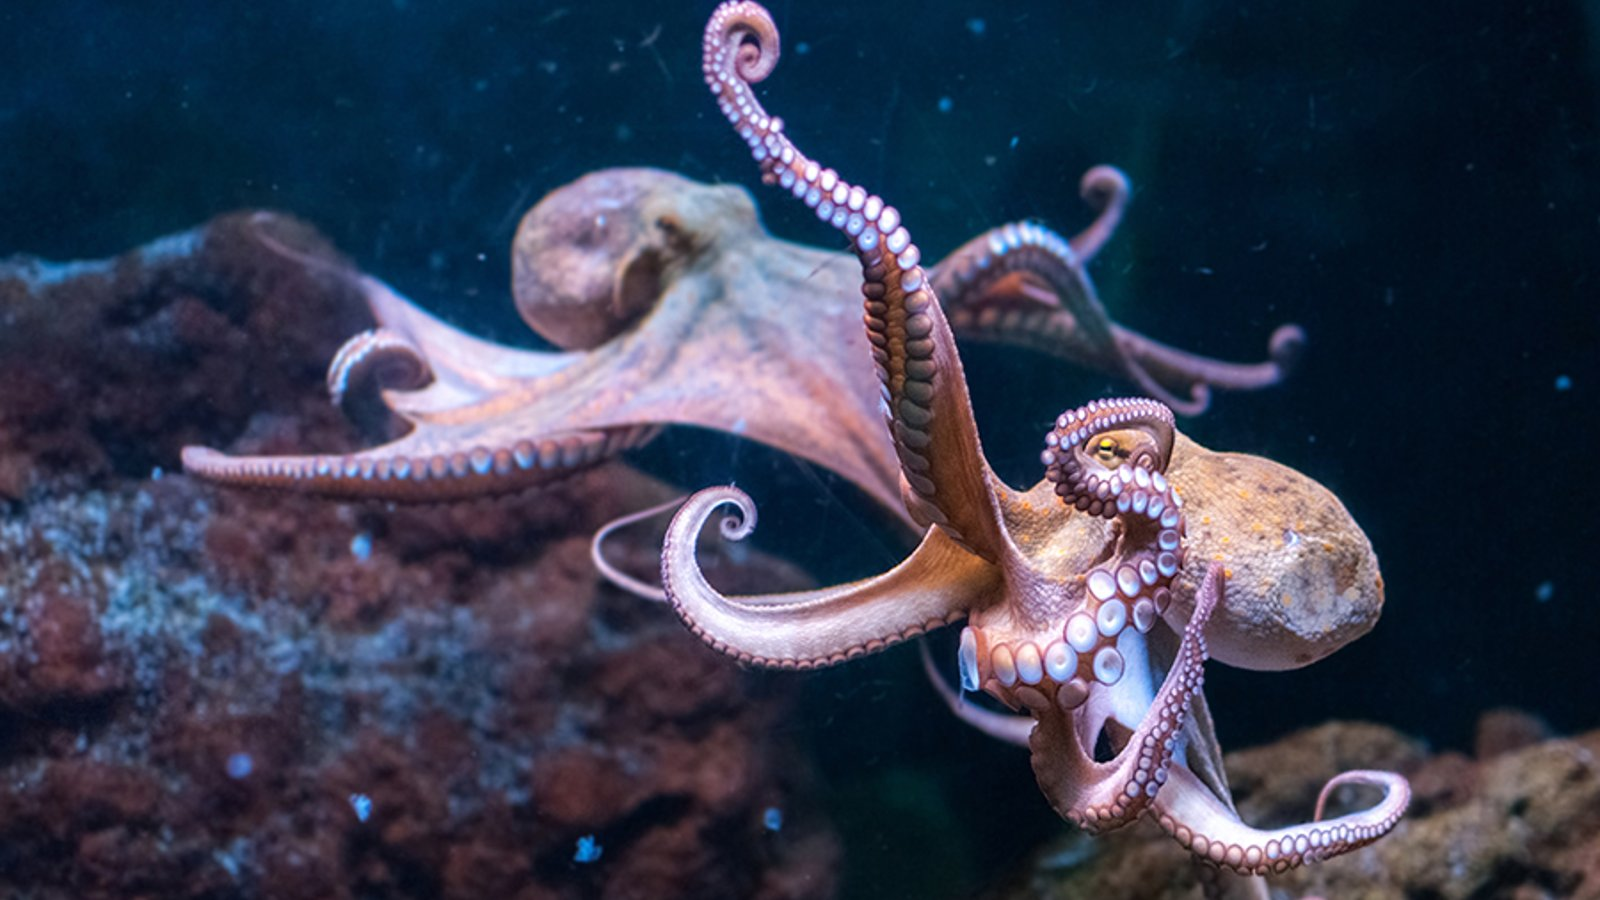 Fewer Octopuses or Less Octopi?